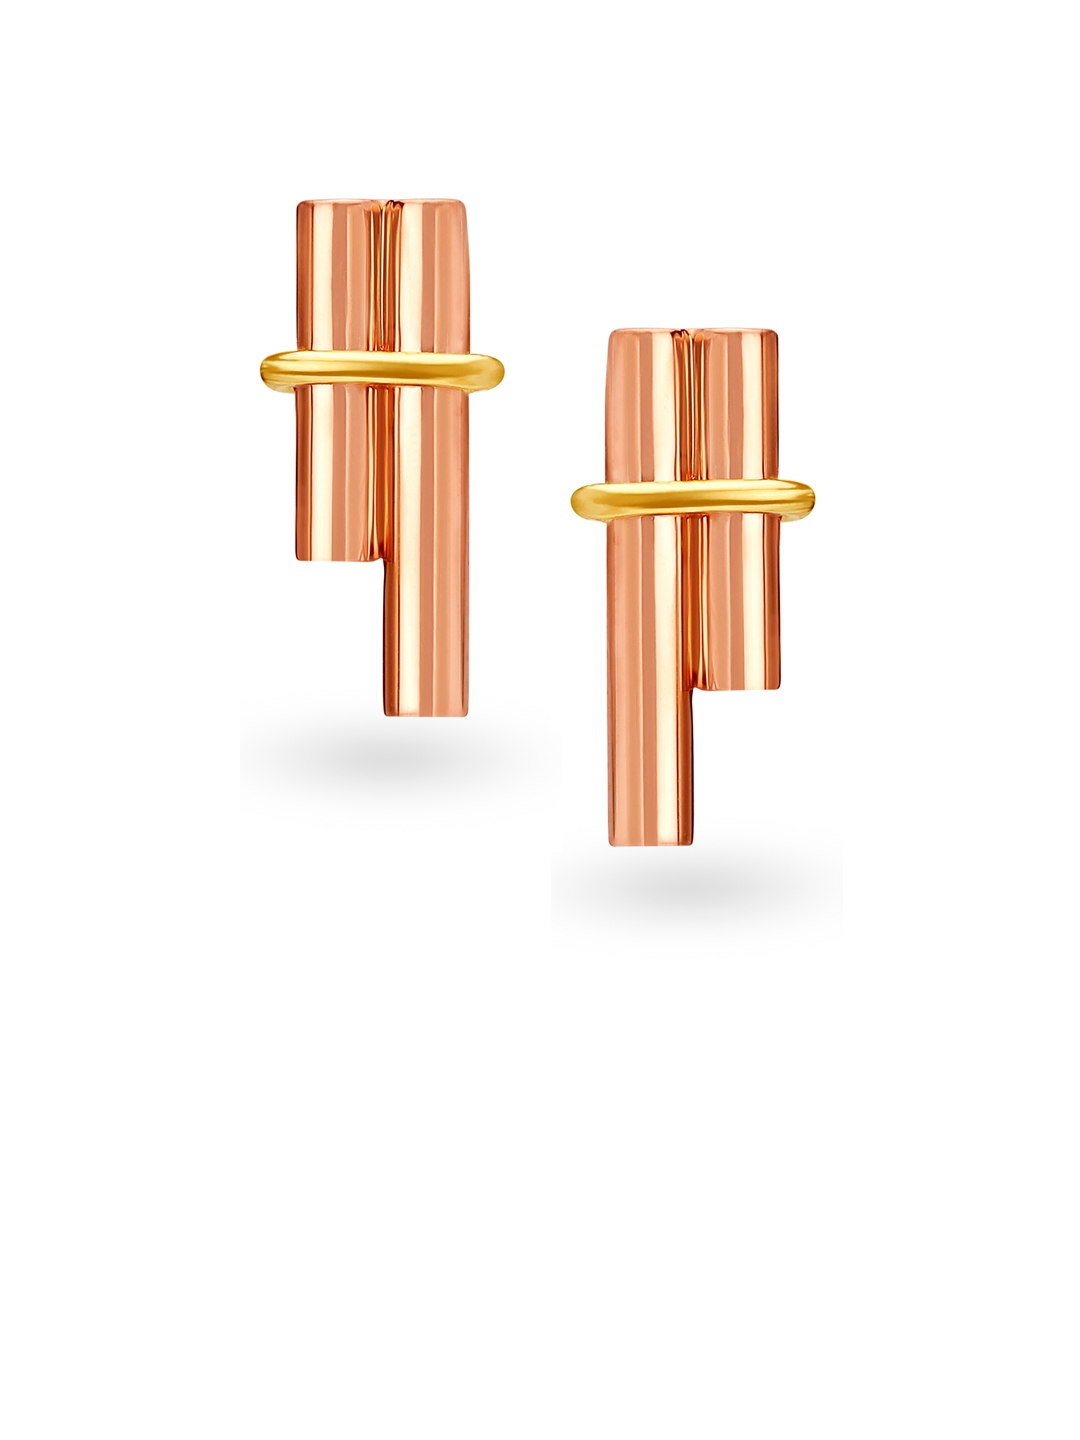 Mia by Tanishq 14KT Yellow   Rose Gold Stud Earrings